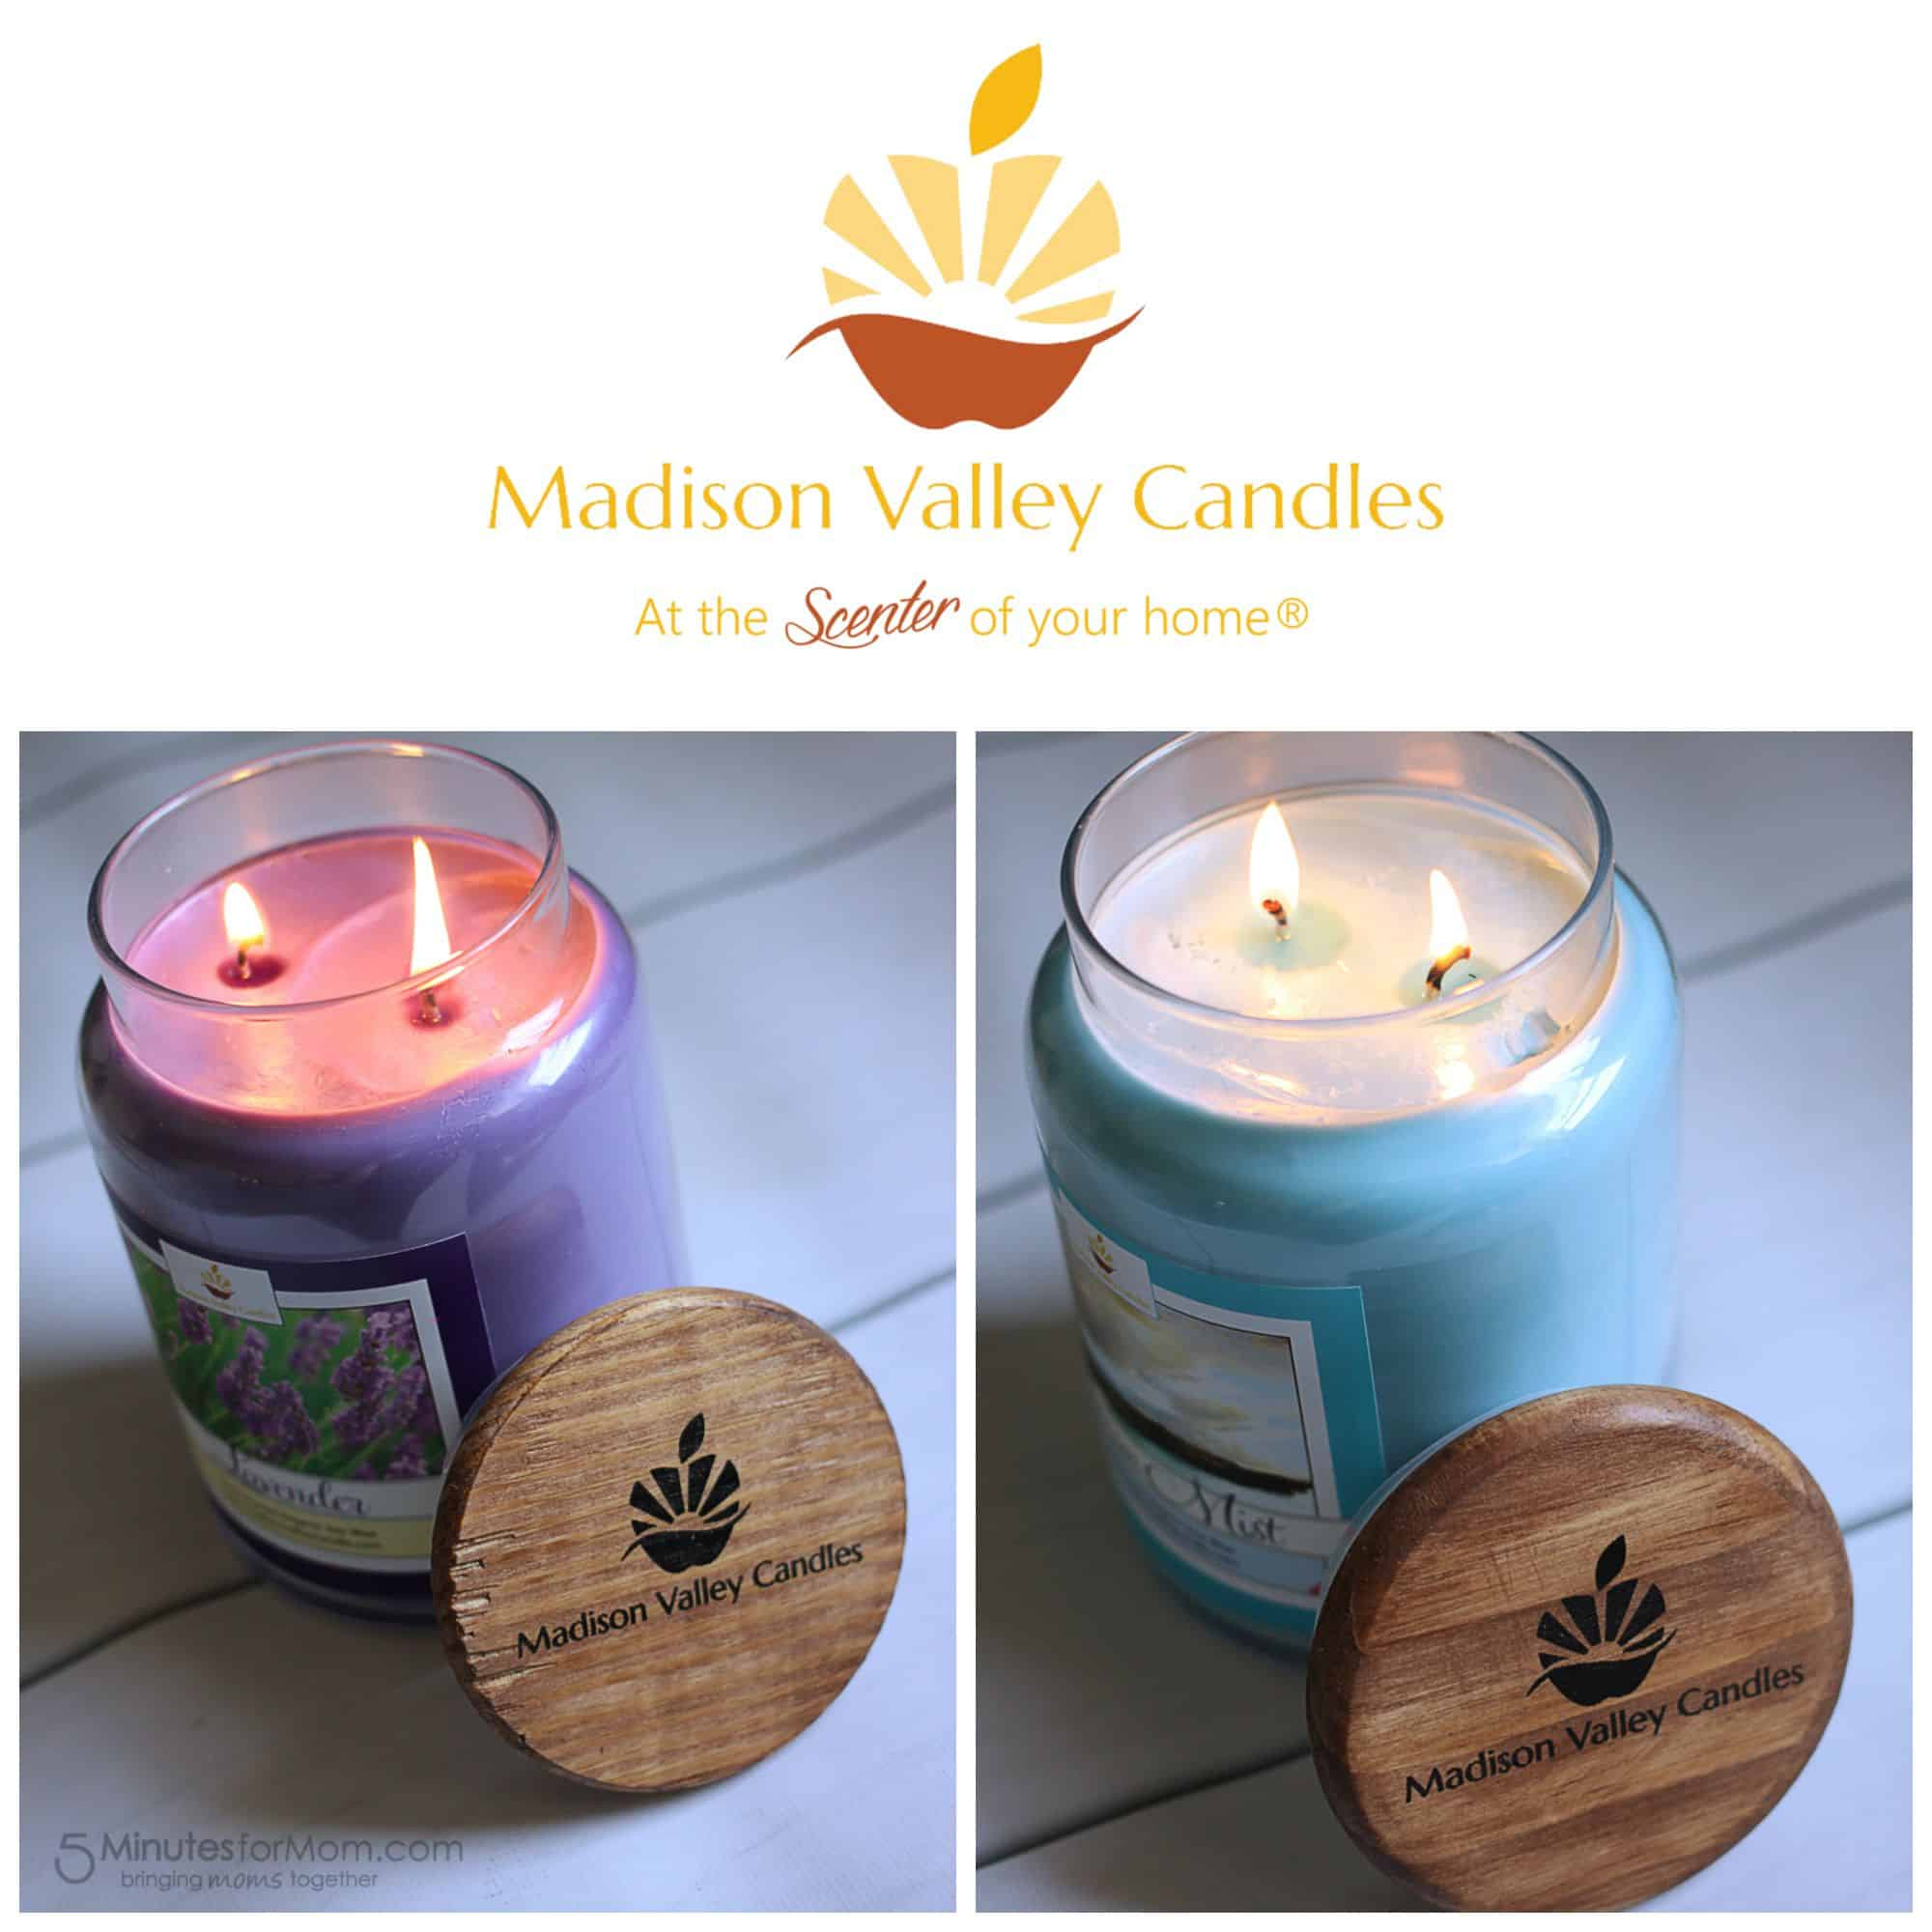 Madison Valley Candles at the Scenter of your Home